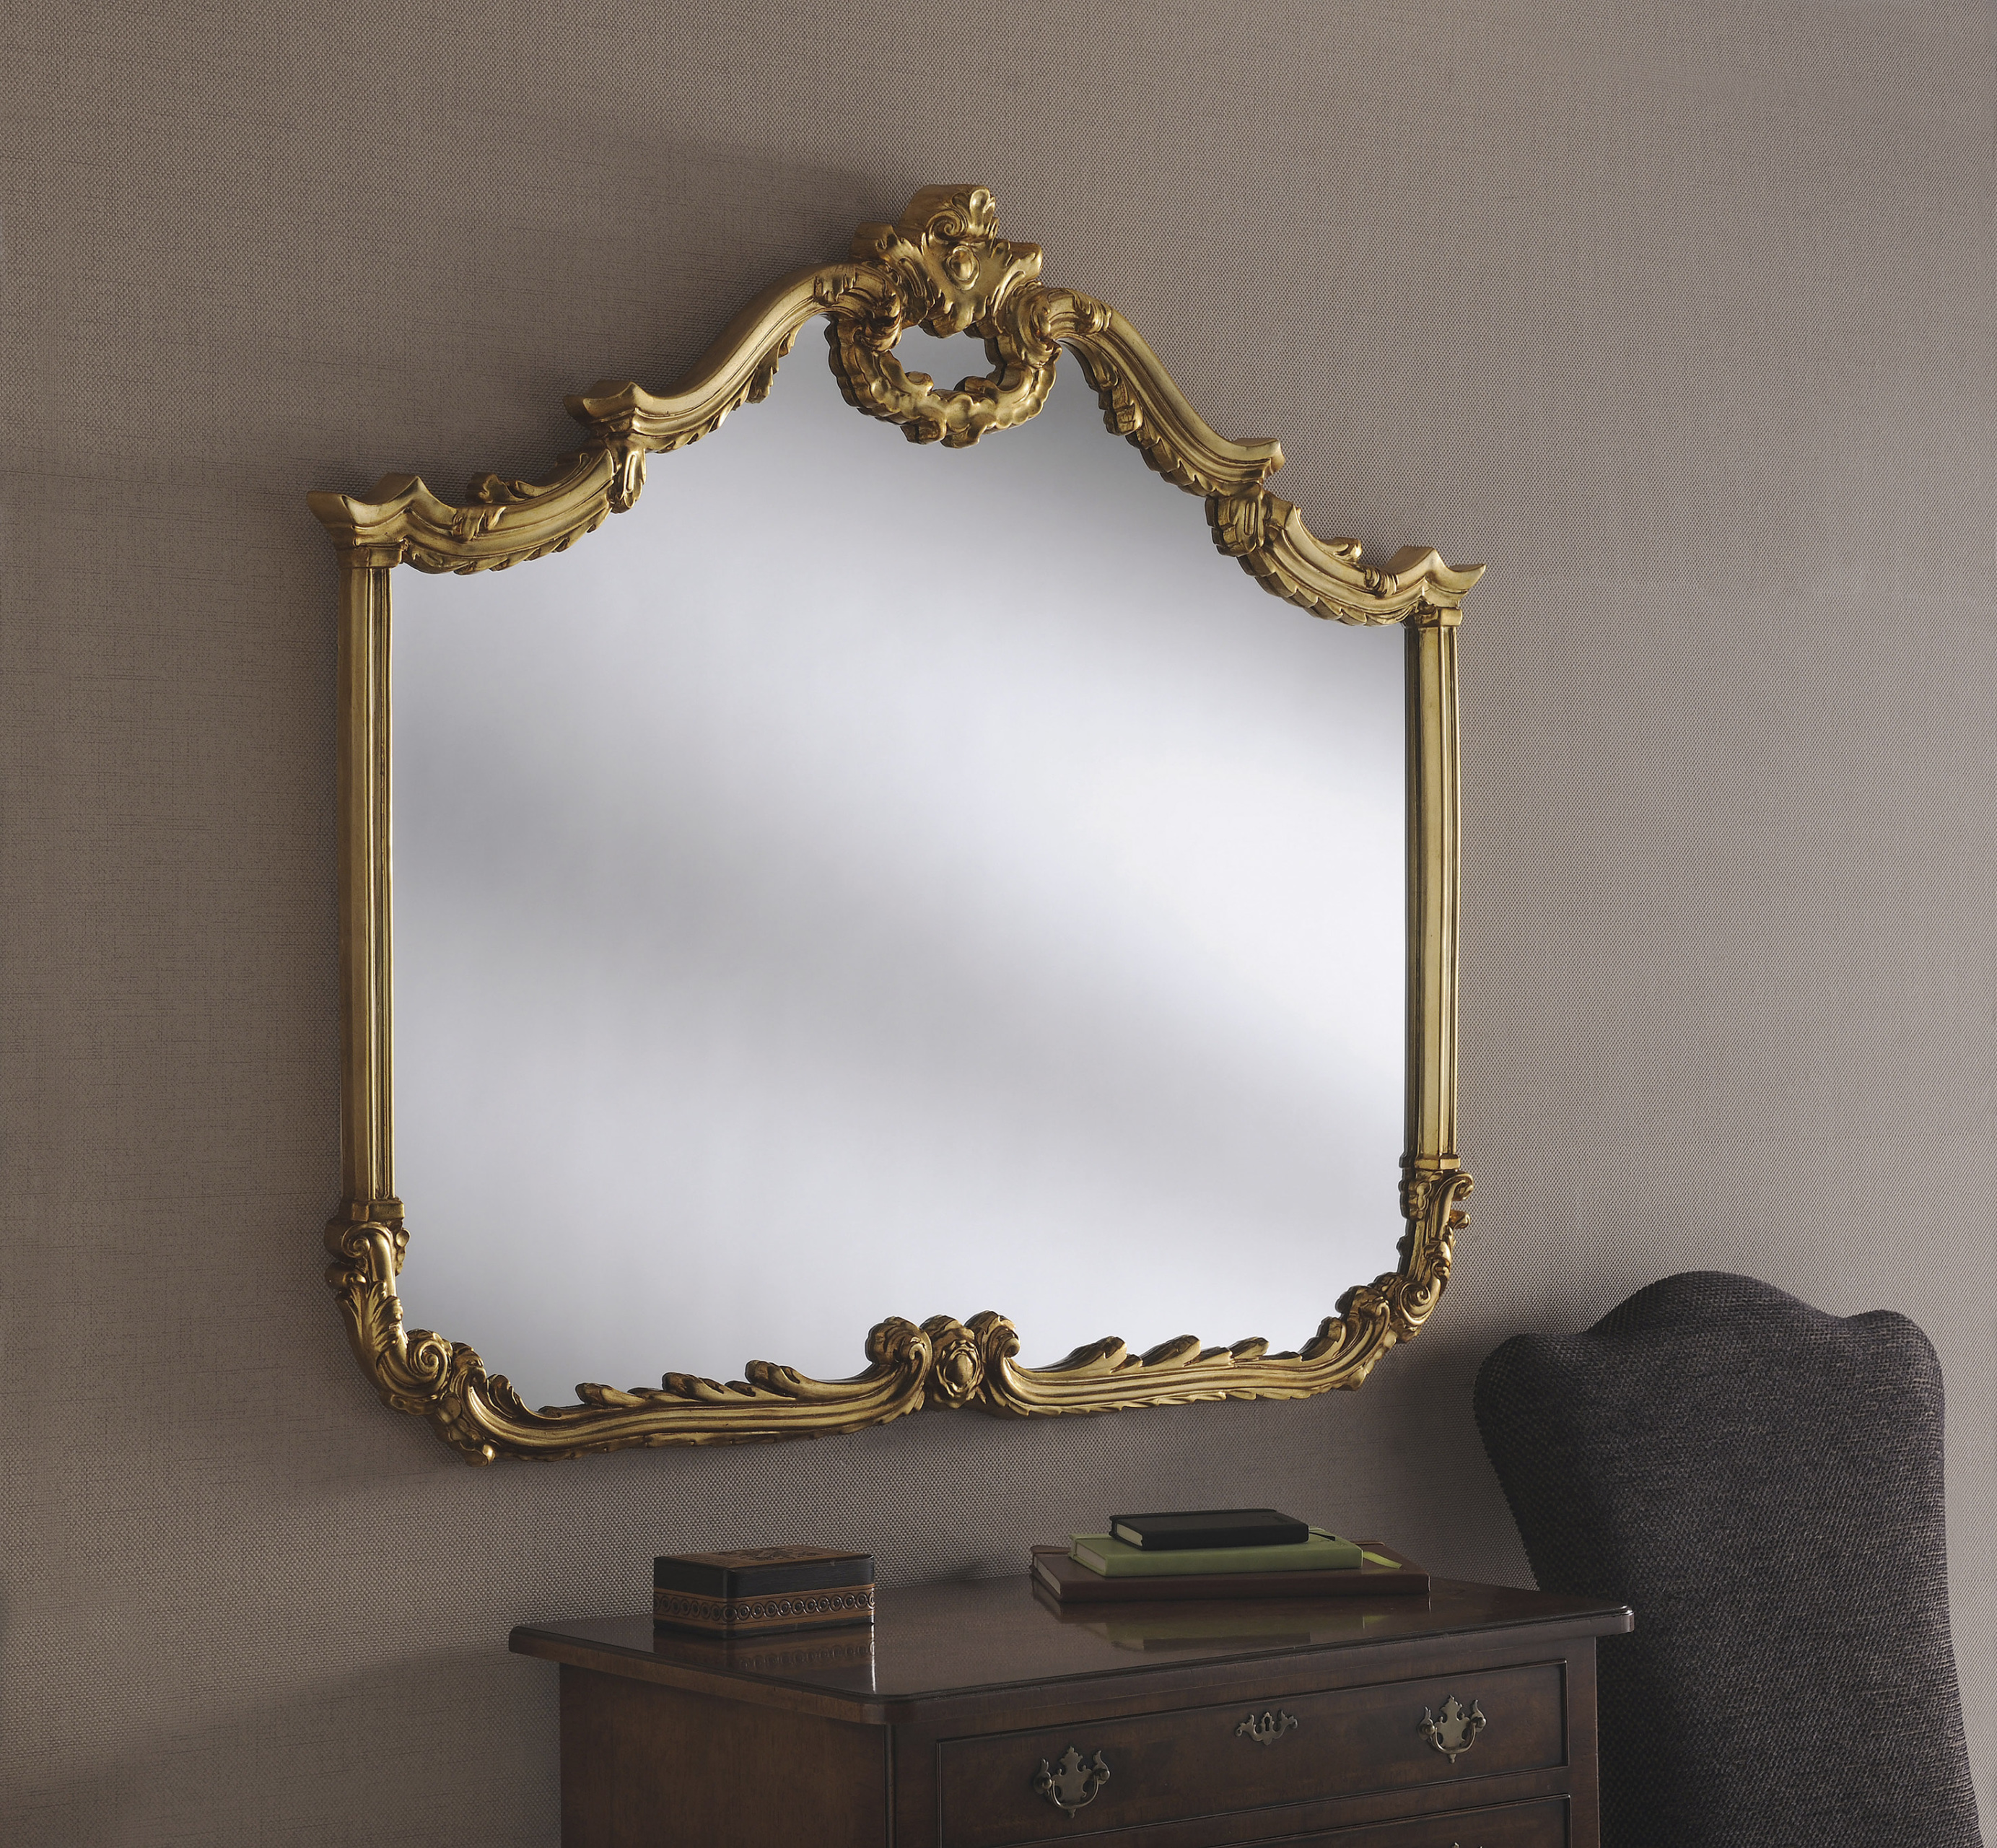 Yg209 Silver Ornate Decorative Large Overmantle Mirror